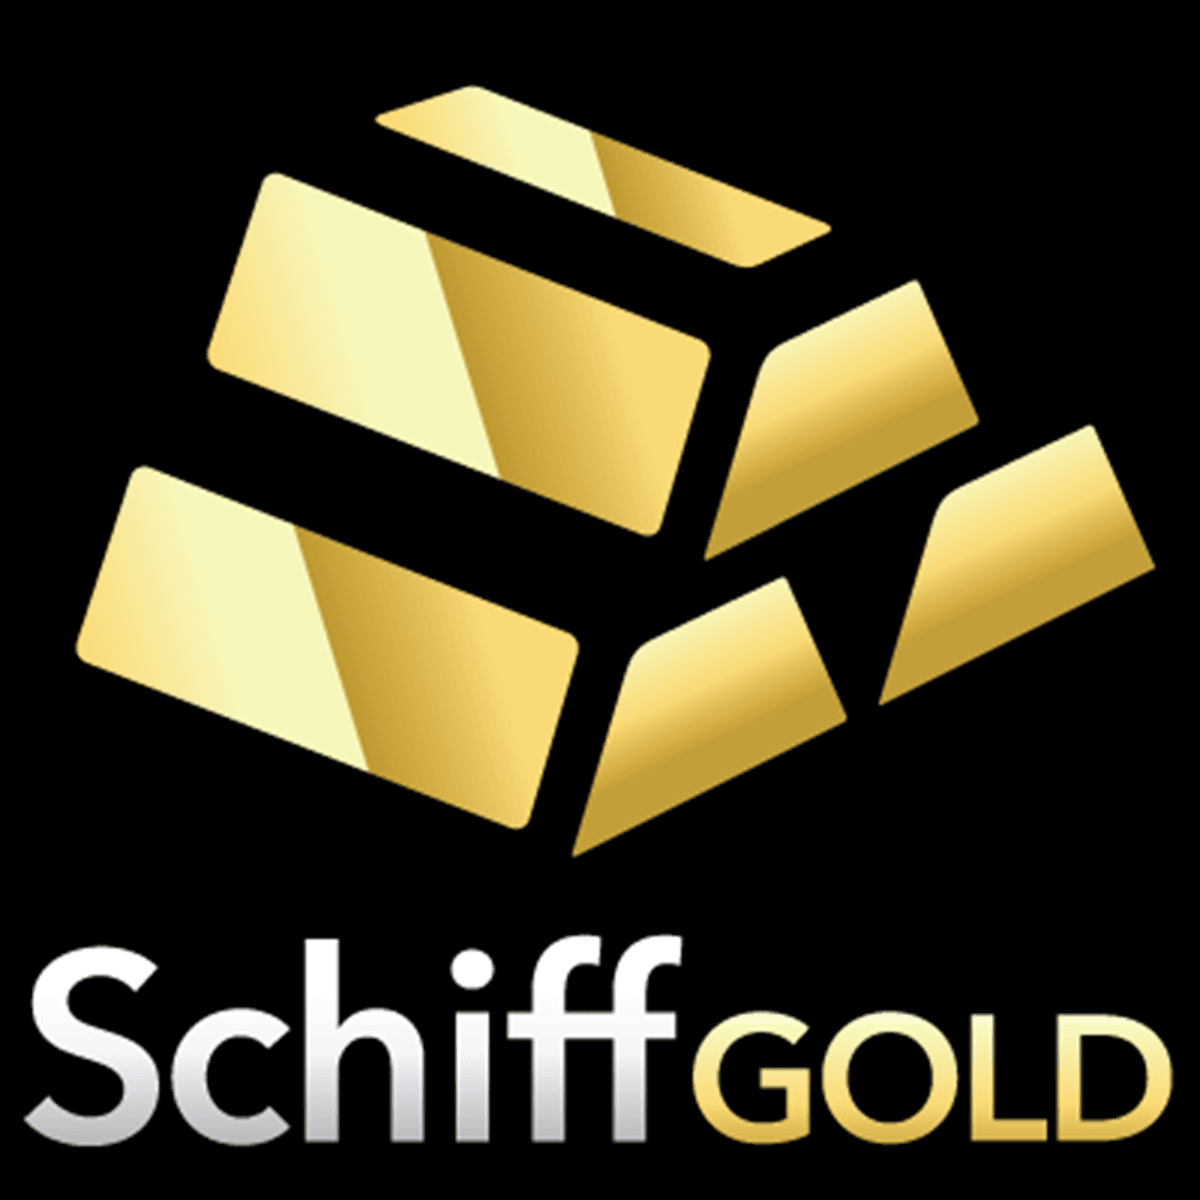 Schiffgold Comkey Gold Headlines Archives Schiffgold Com